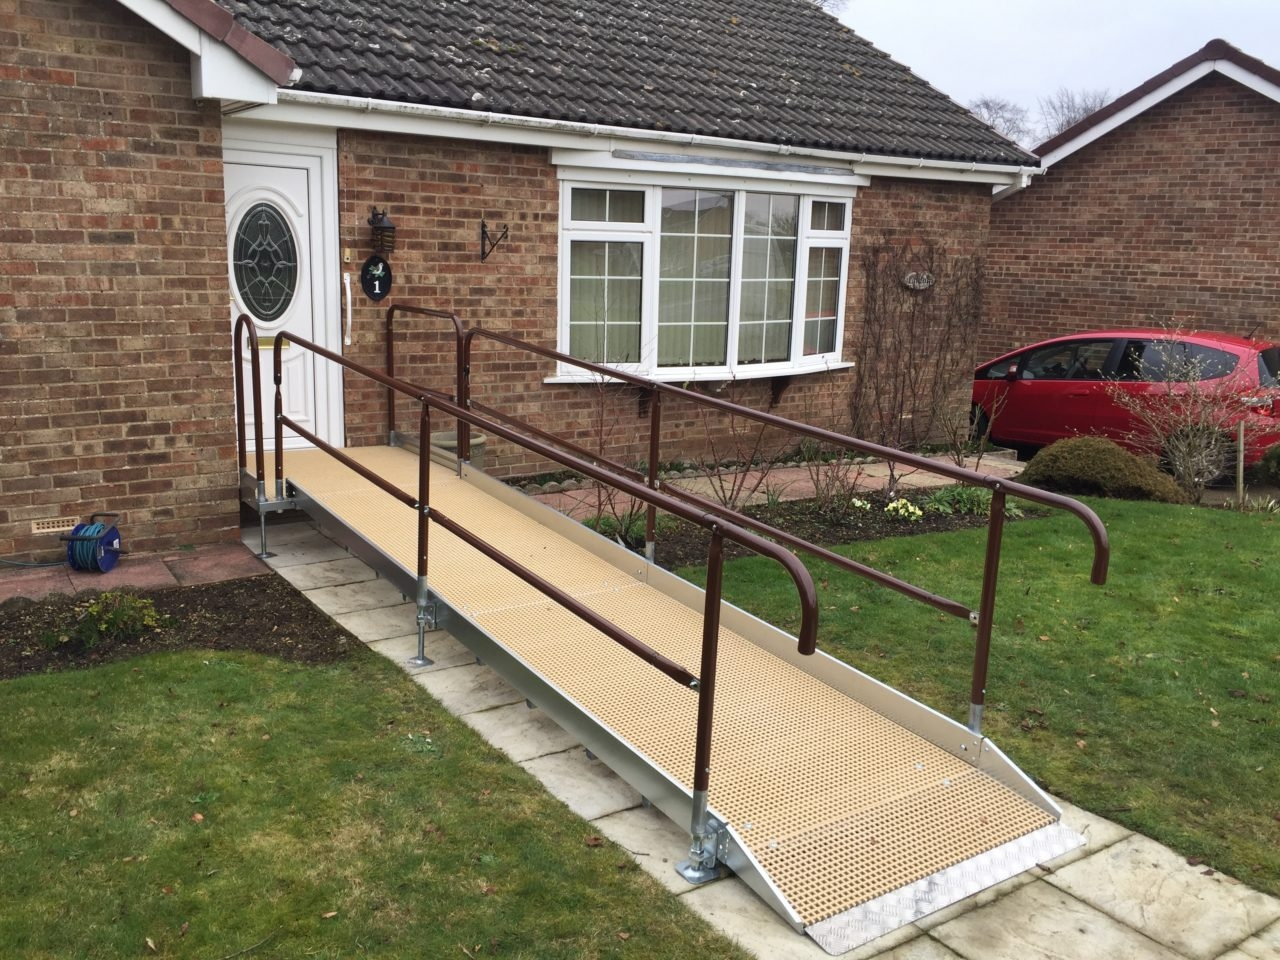 Disabled Ramps Wheelchair Ramp Access Solutions | Disabled Handrails For Outside Steps | Elderly | Full Width | 2 Step | Outdoor | Industrial Pipe